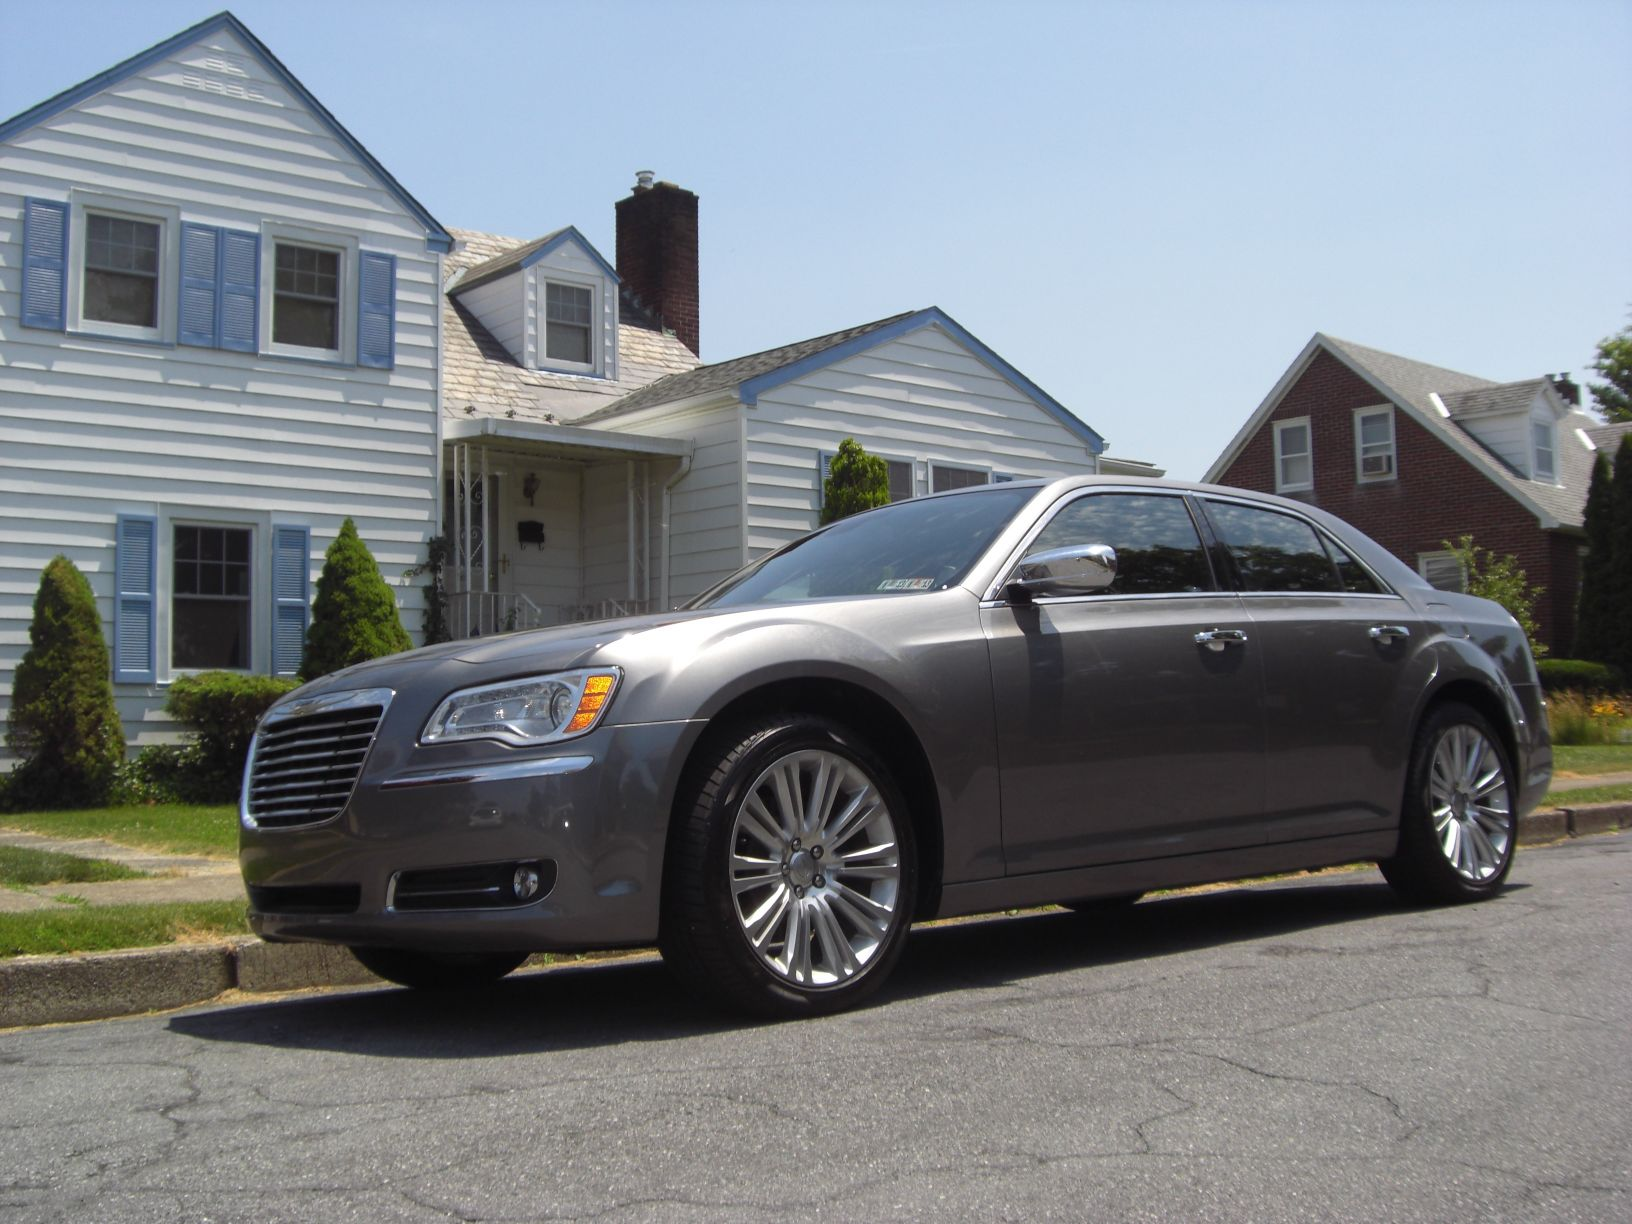 chrysler 300 c hemi 2011 american cars and parts. Black Bedroom Furniture Sets. Home Design Ideas